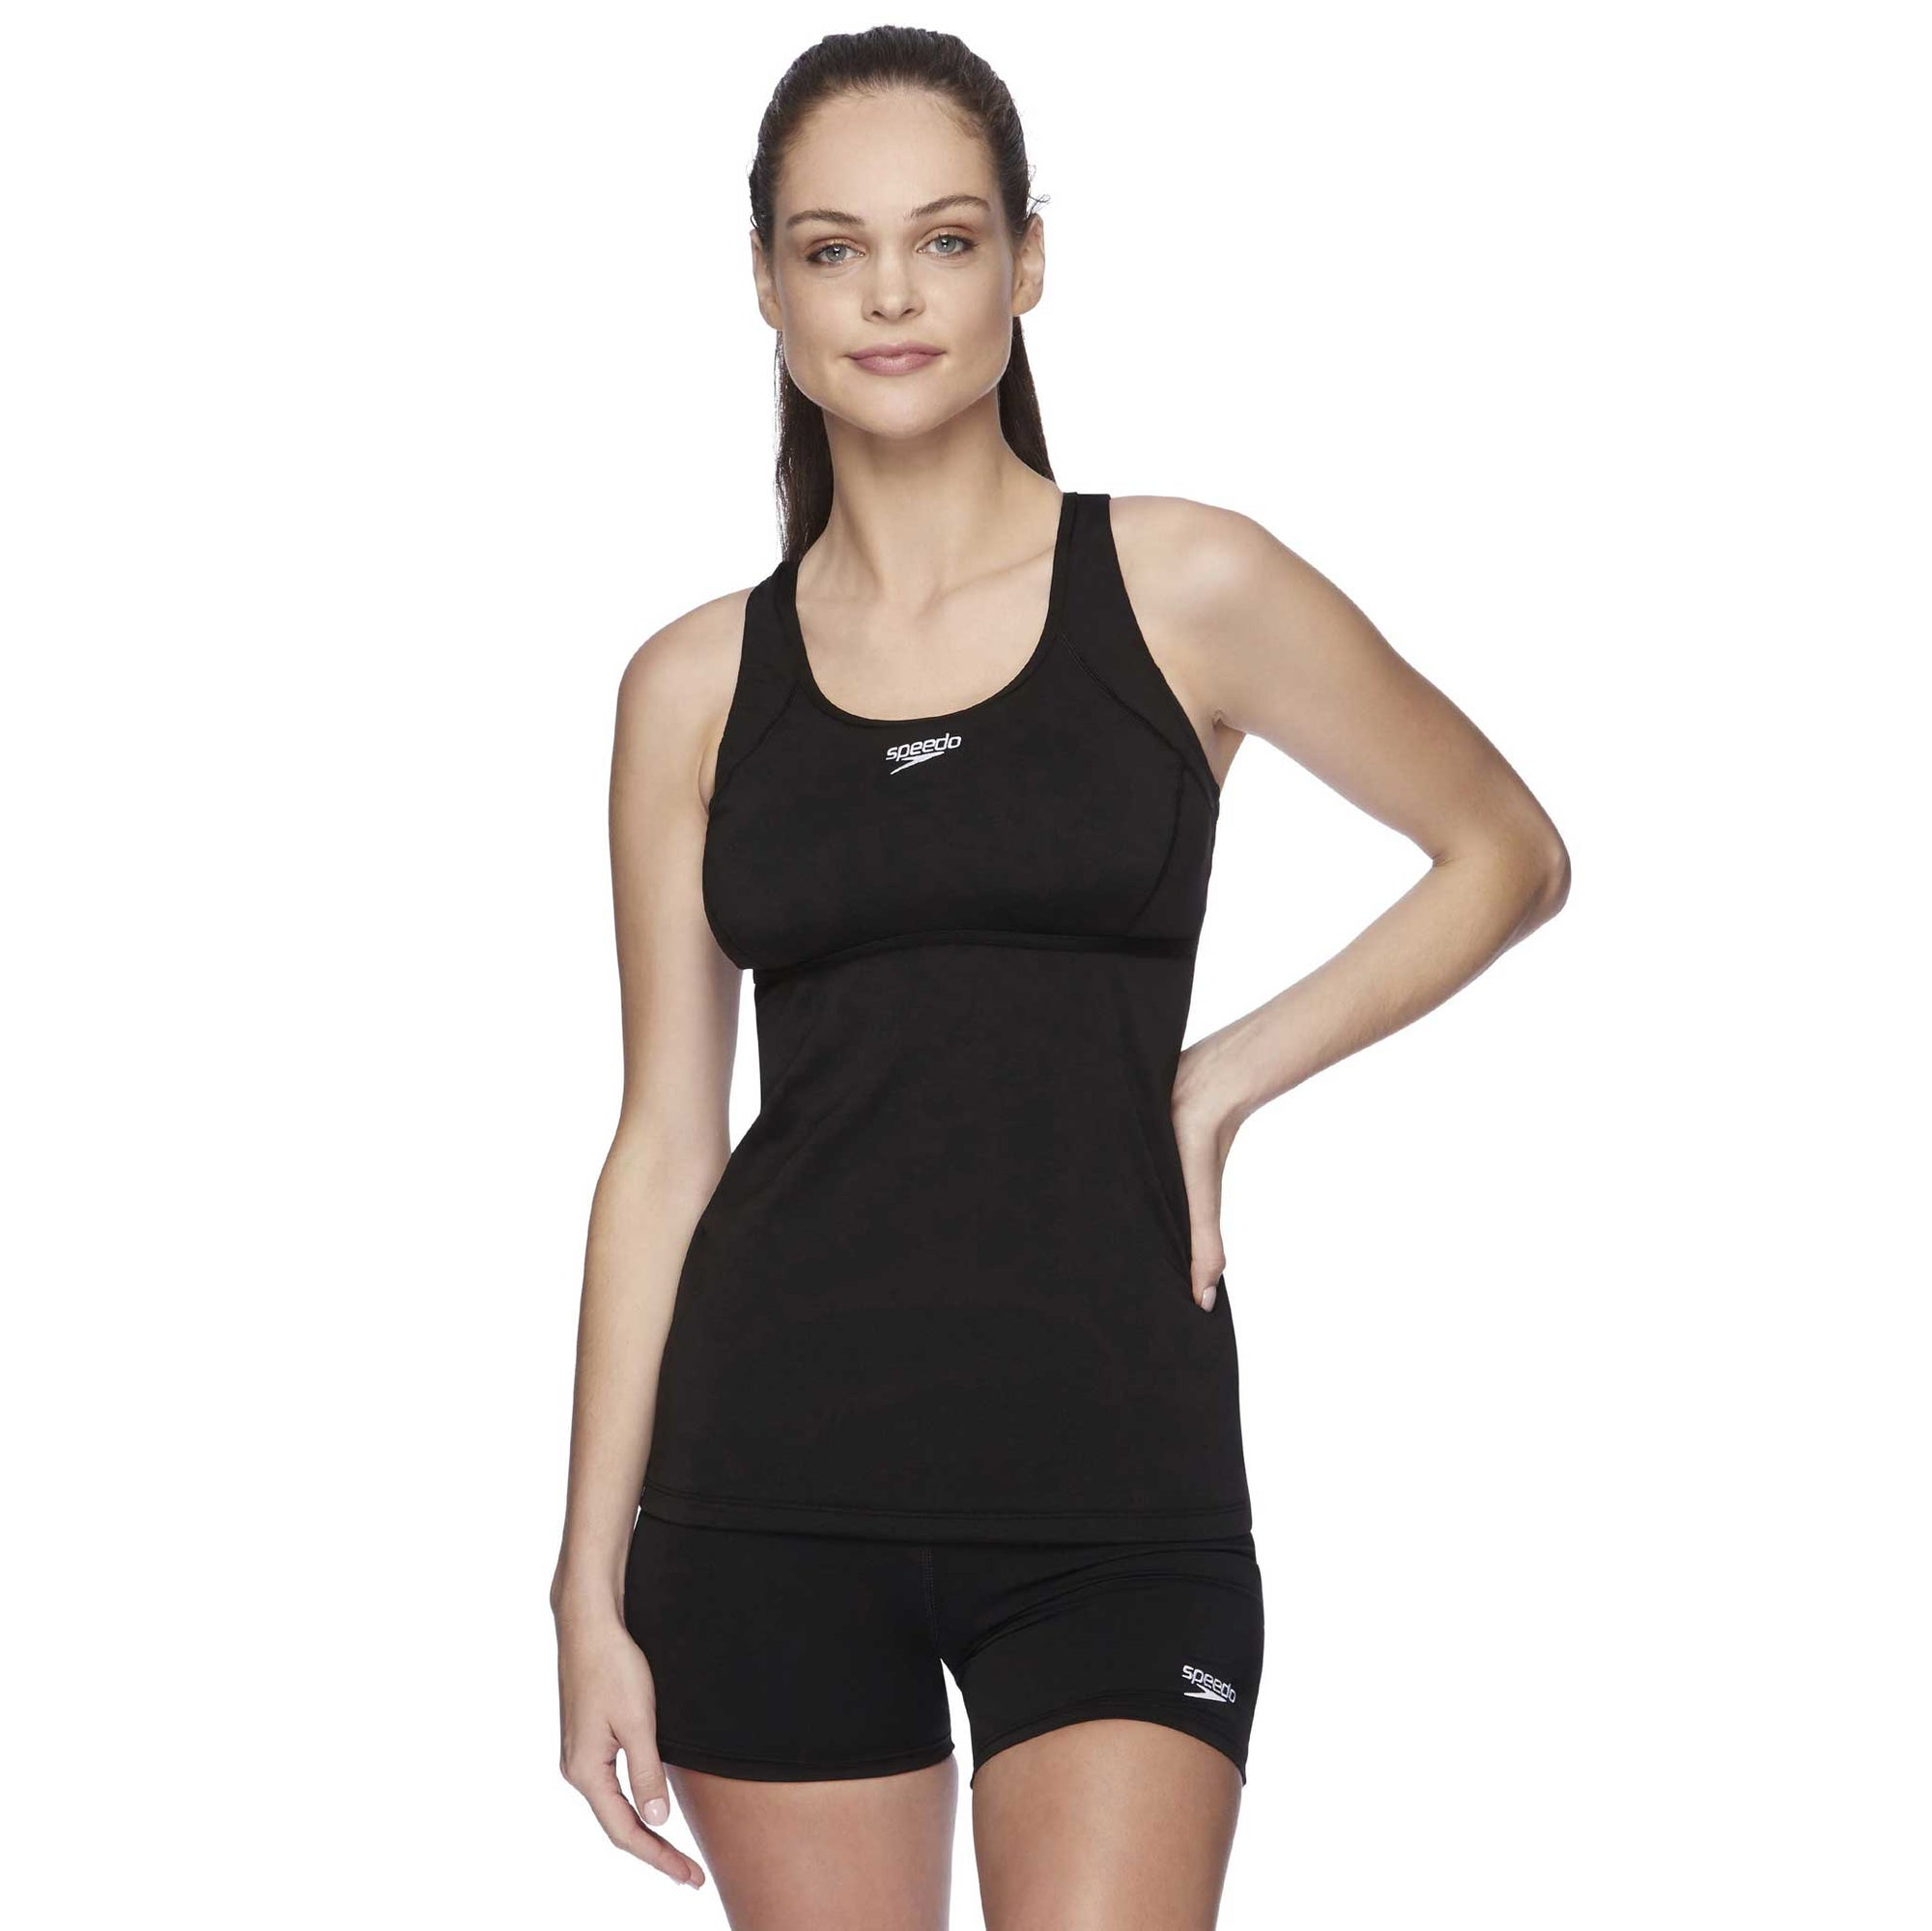 Speedo Womens D/DD Cup Tank - Cross Trainer